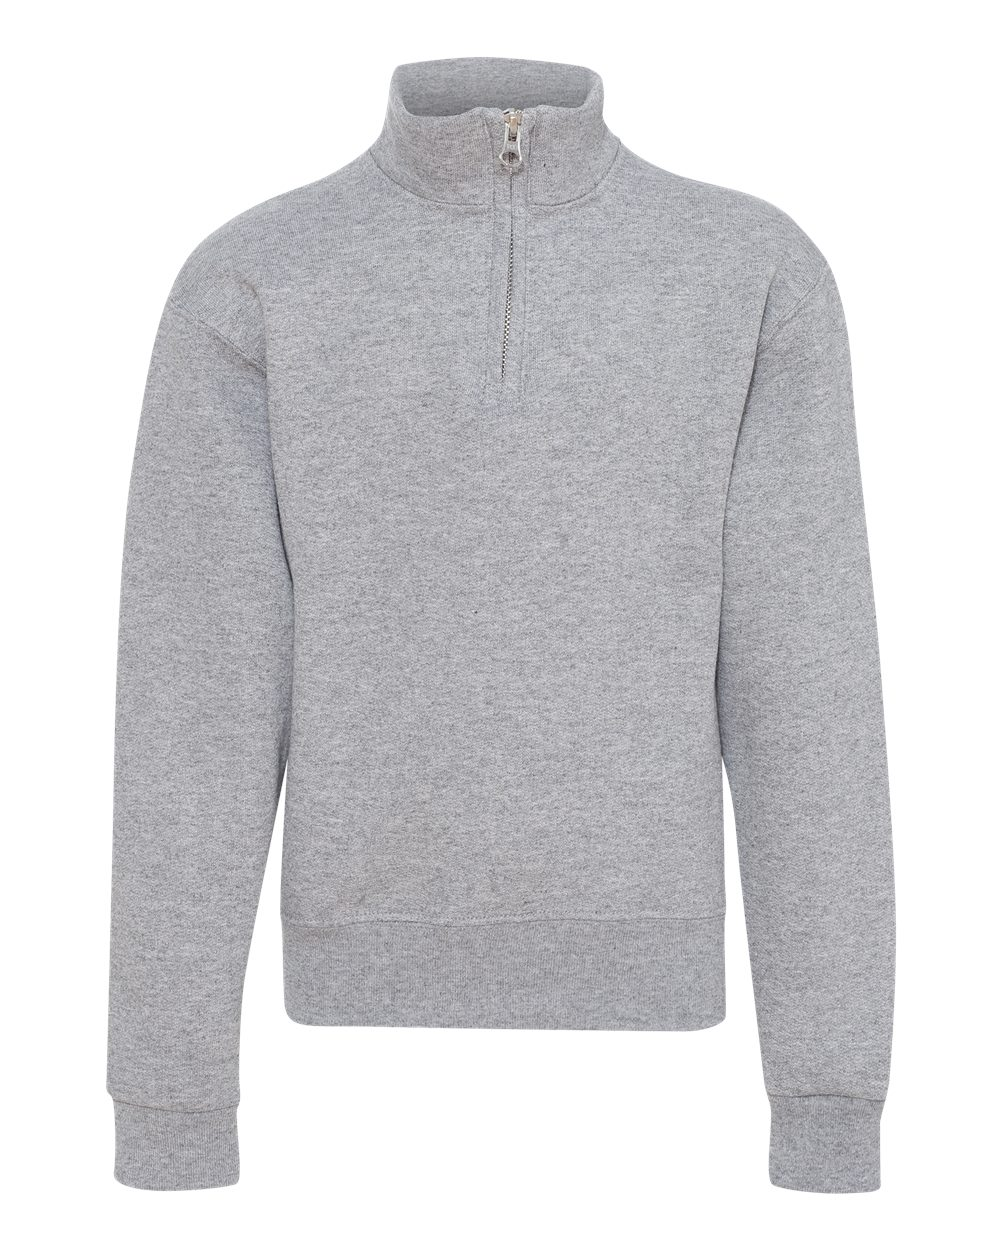 Picture of Jerzees Nublend Youth Quarter-Zip Cadet Collar Sweatshirt